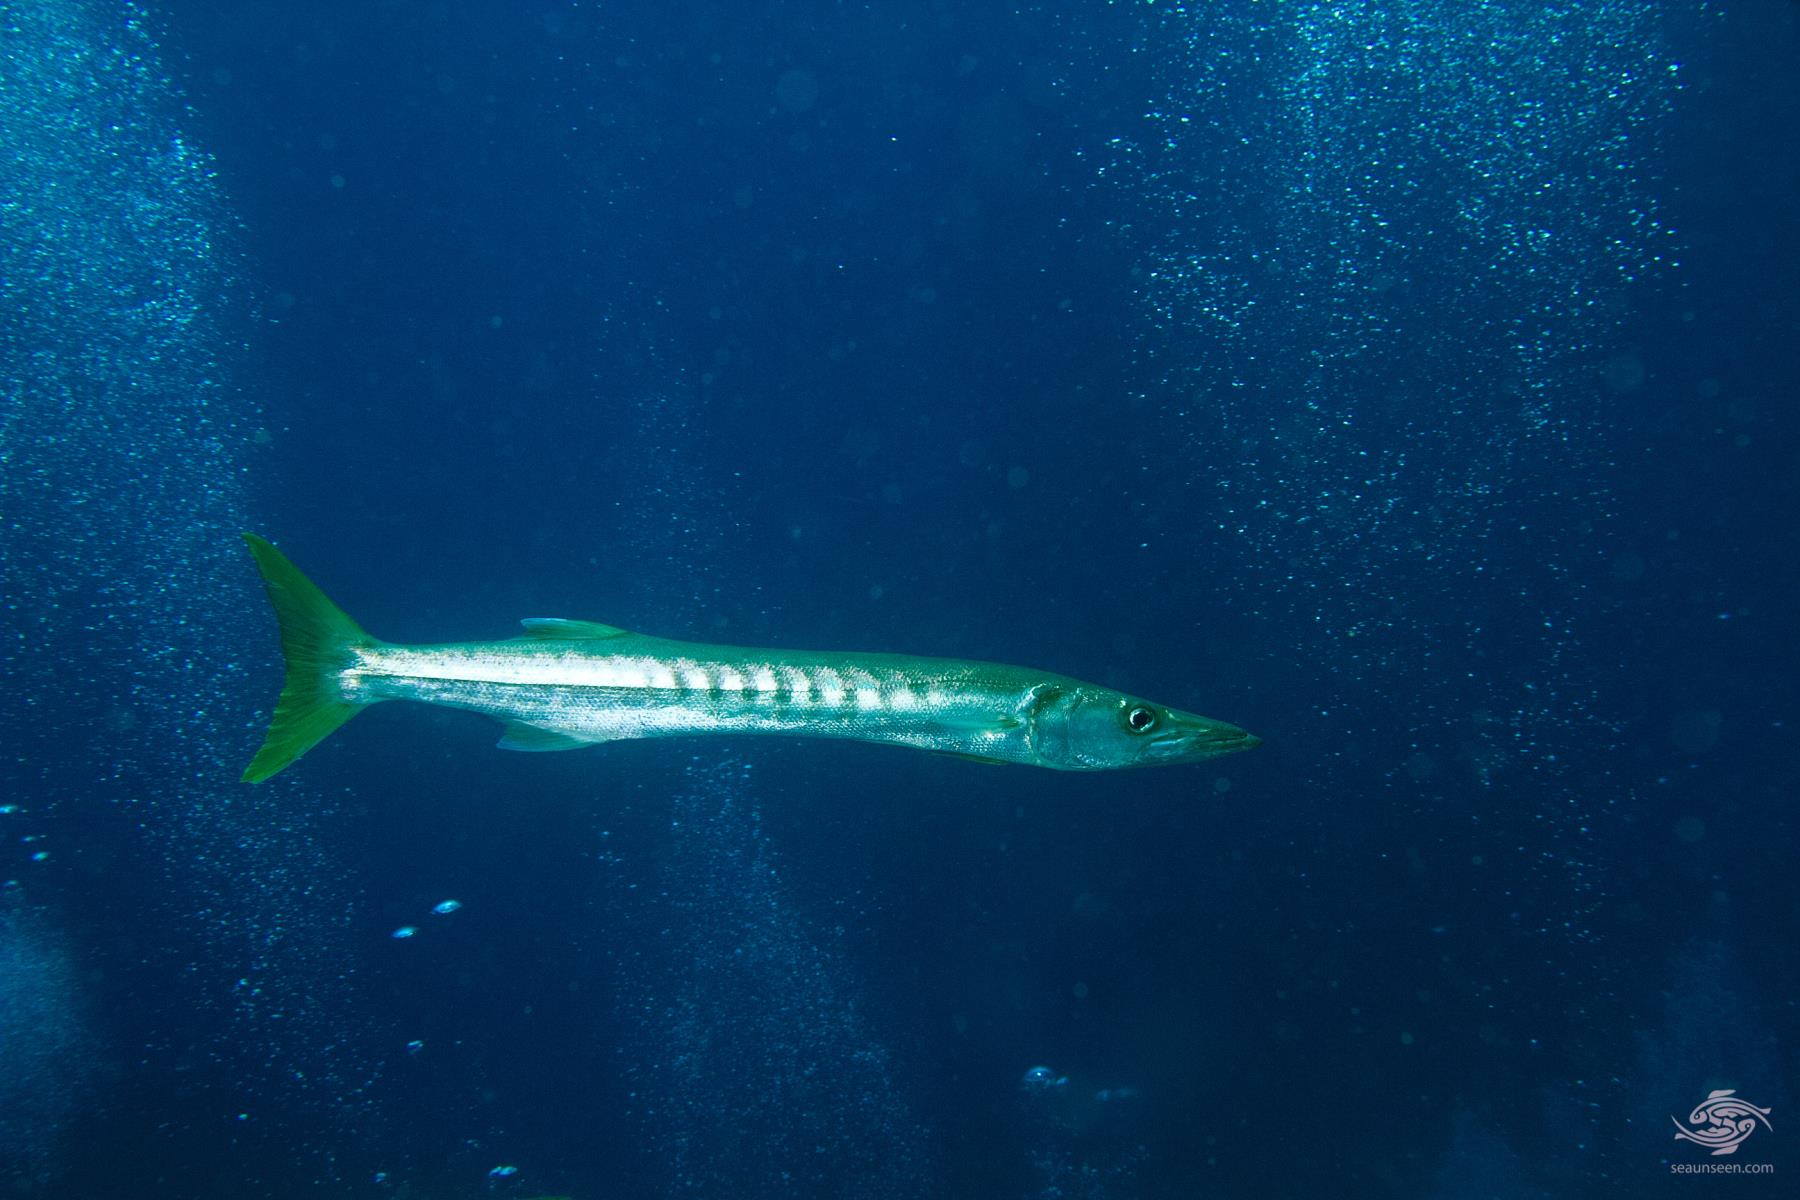 pickhandle barracuda (Sphyraena jello)